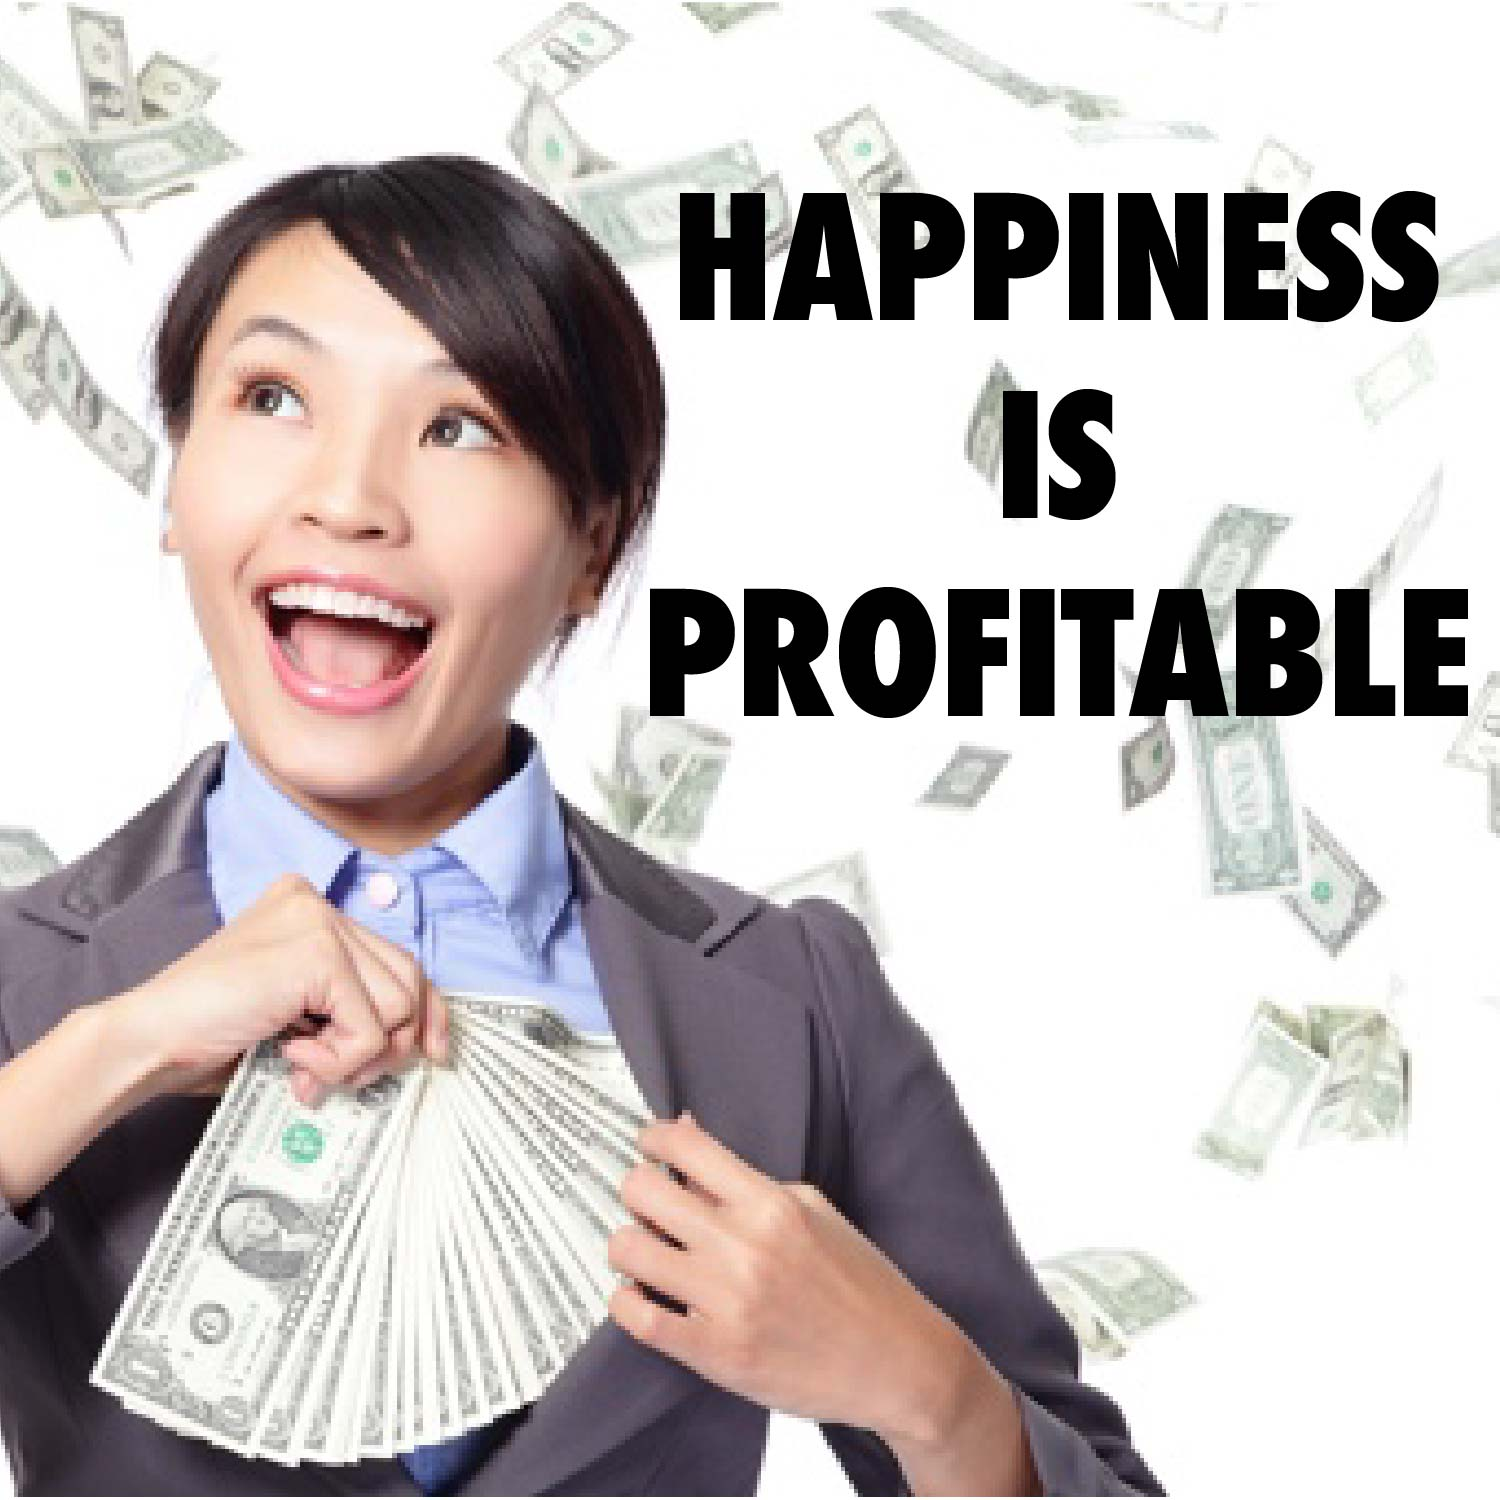 Title: HAPPINESS IS PROFITABLE | Image: Money flying in the air, woman with large smile putting money in her pocket.